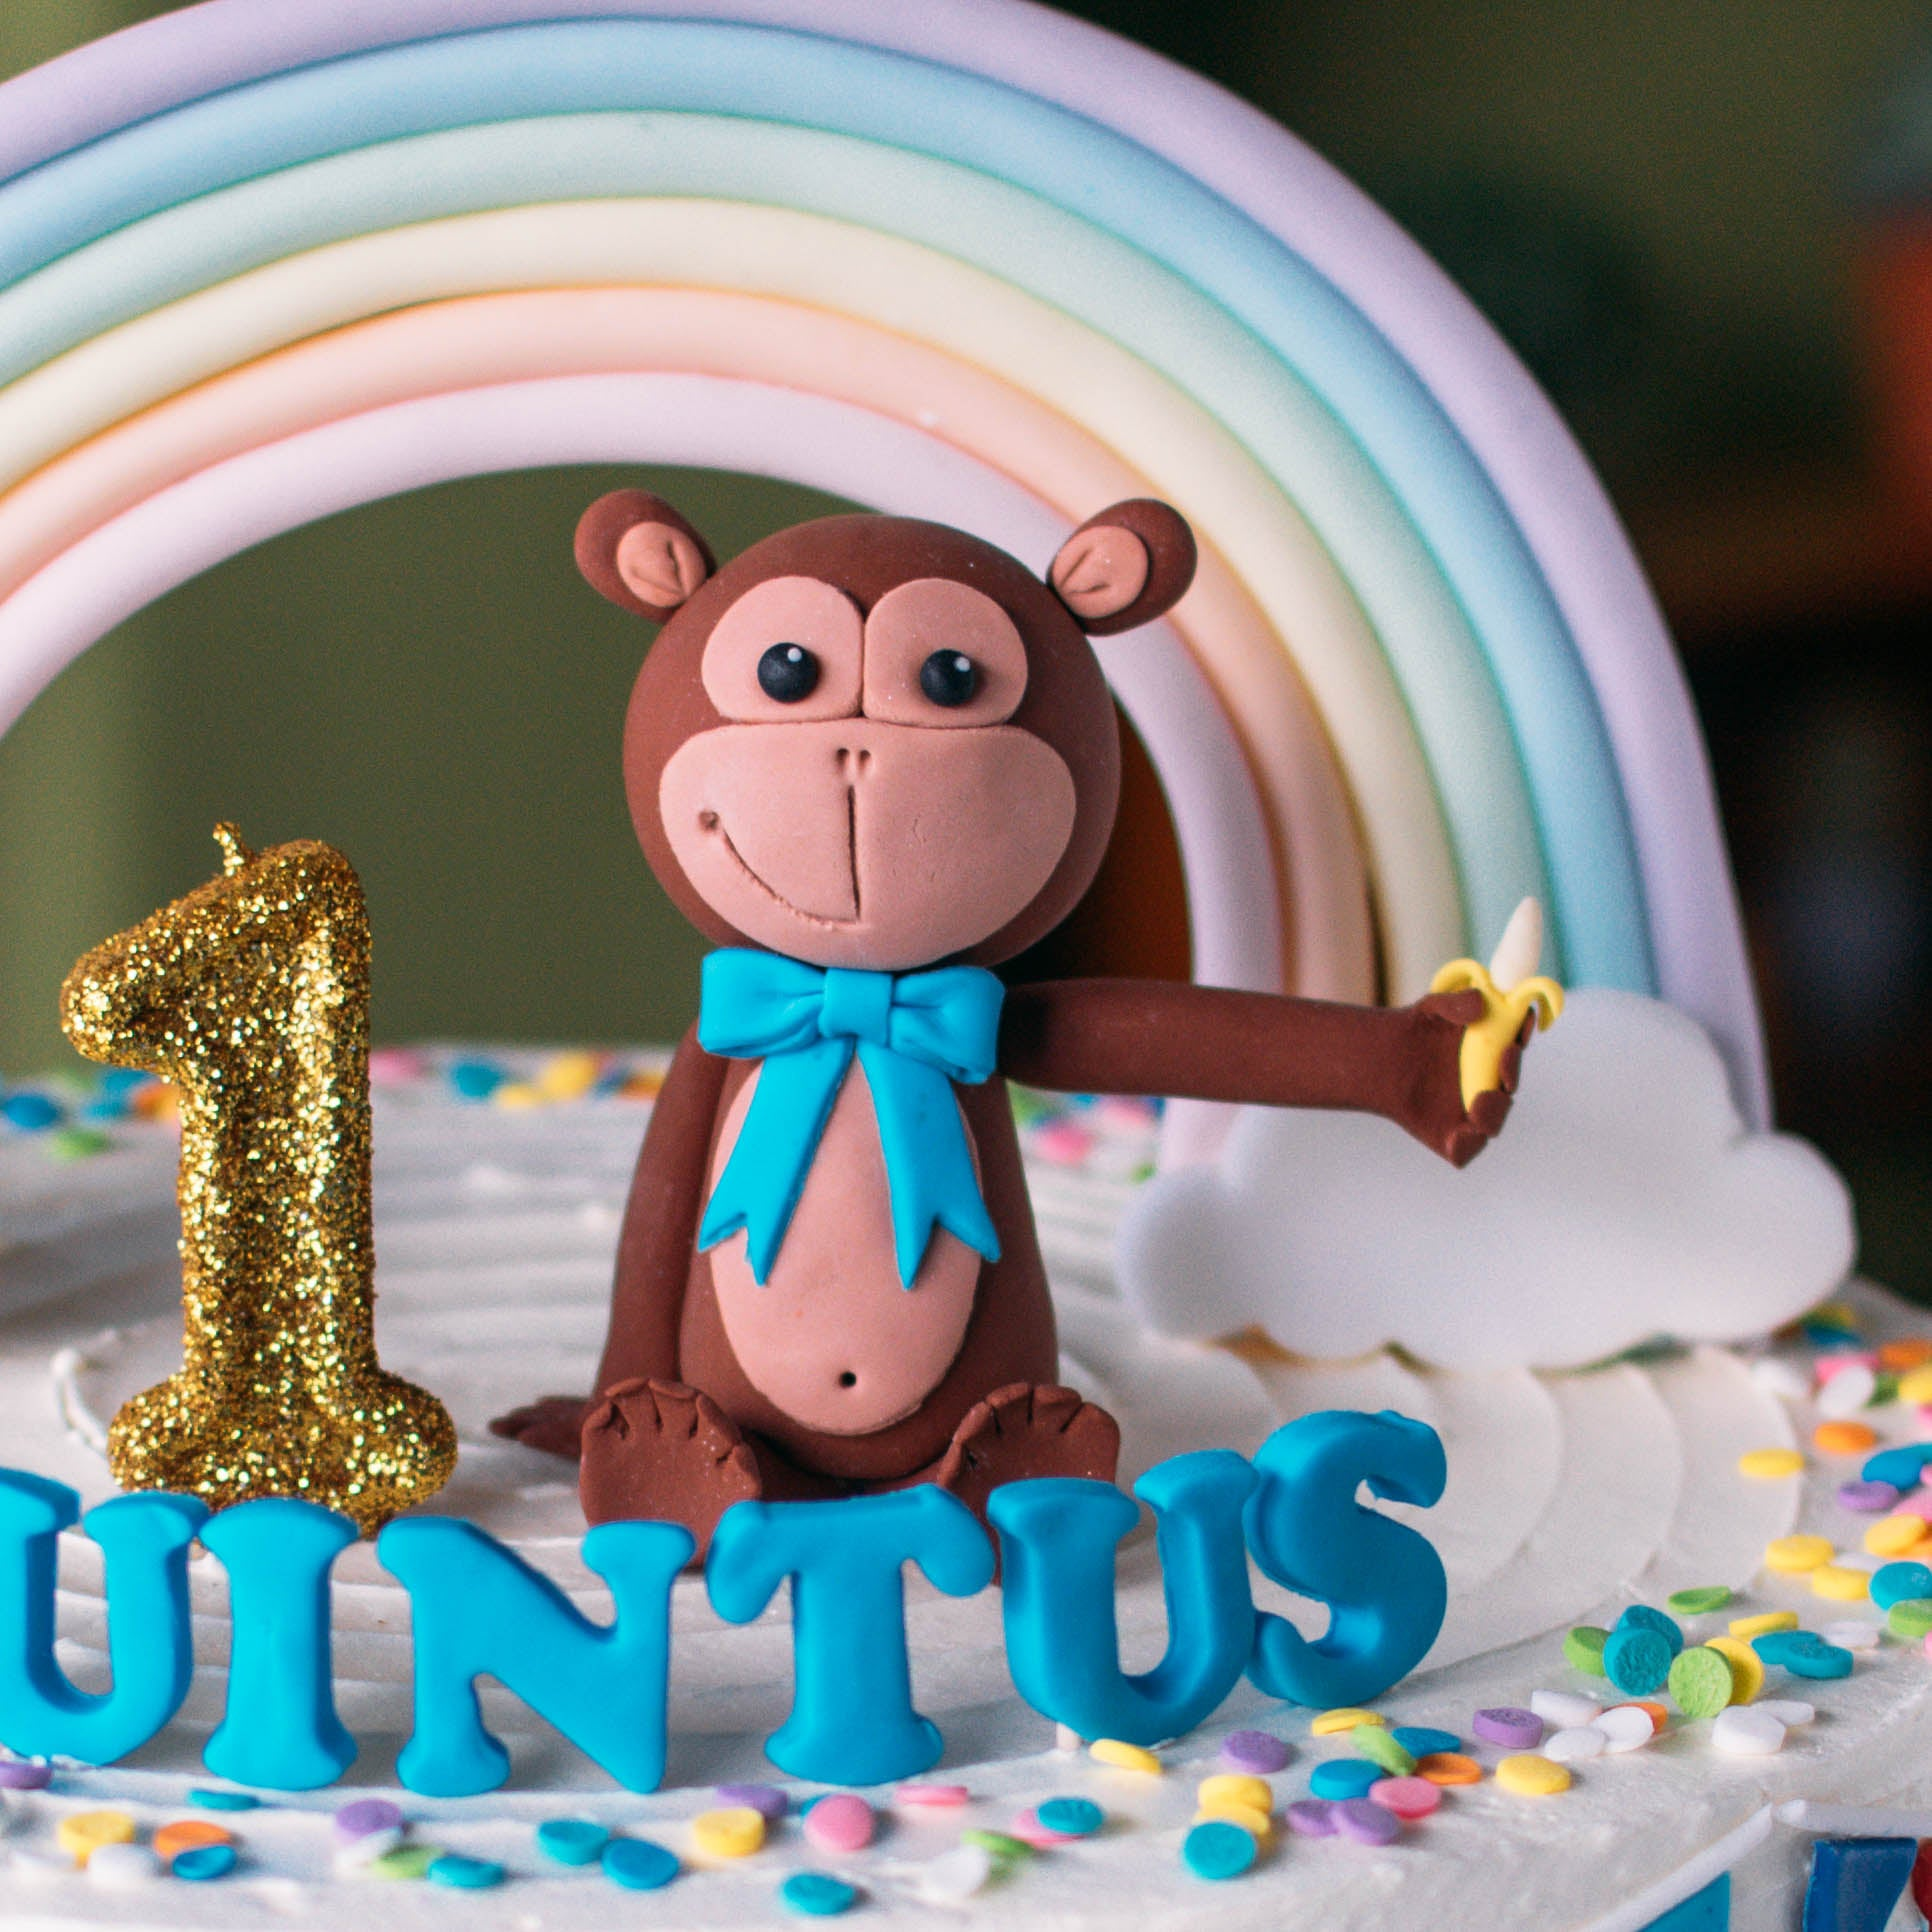 Cheeky Monkey Fondant Topper - Custom Bakes by Edith Patisserie